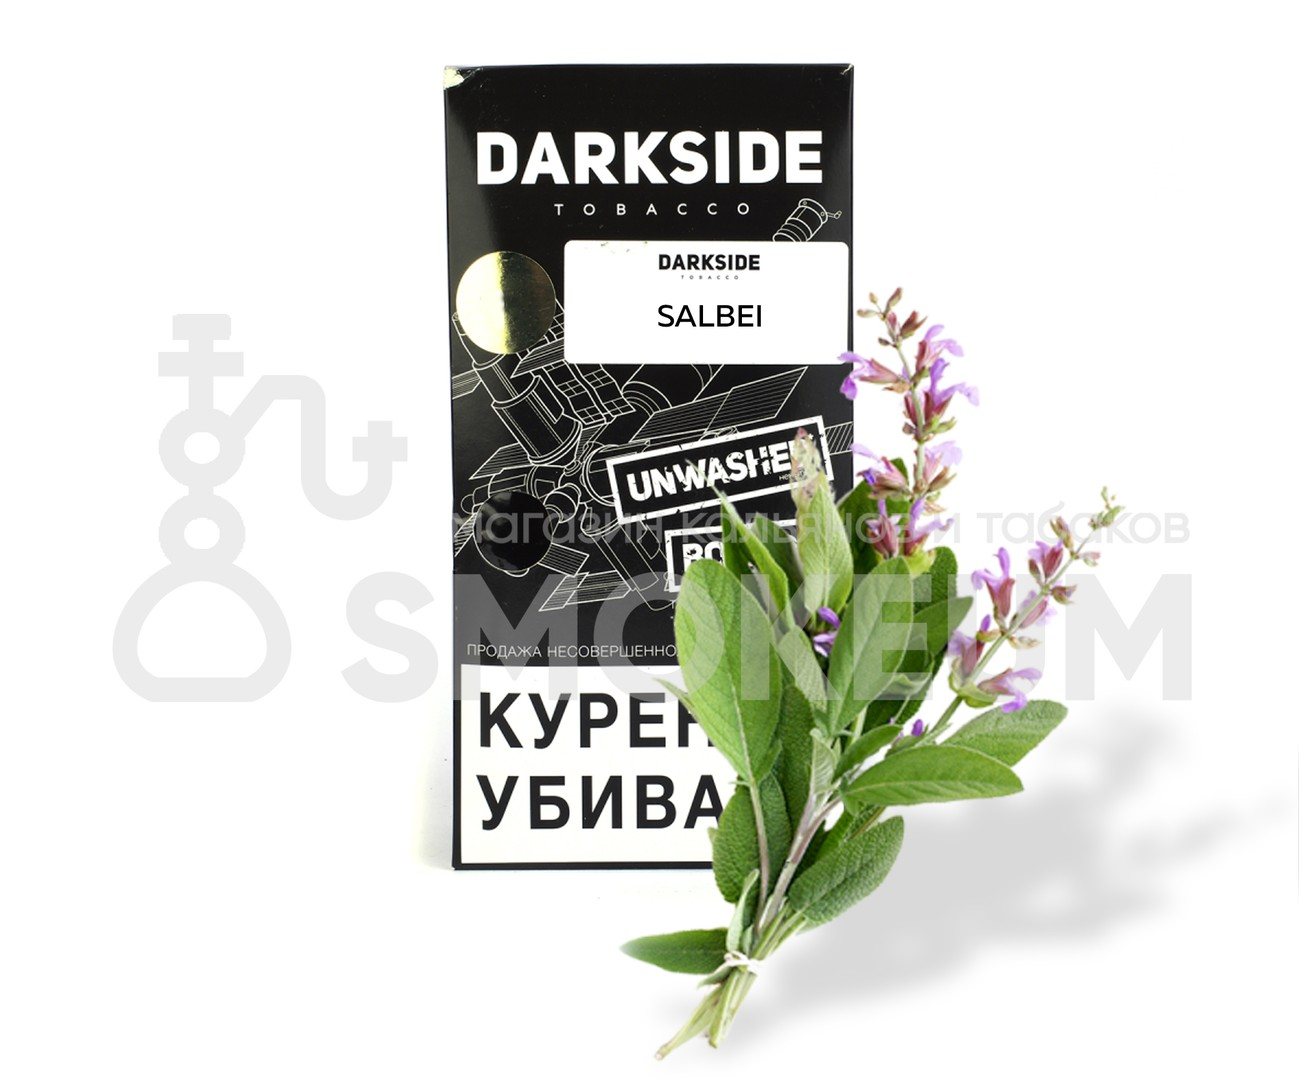 Табак Darkside (Medium) - Salbei (Шалфей) 250 гр